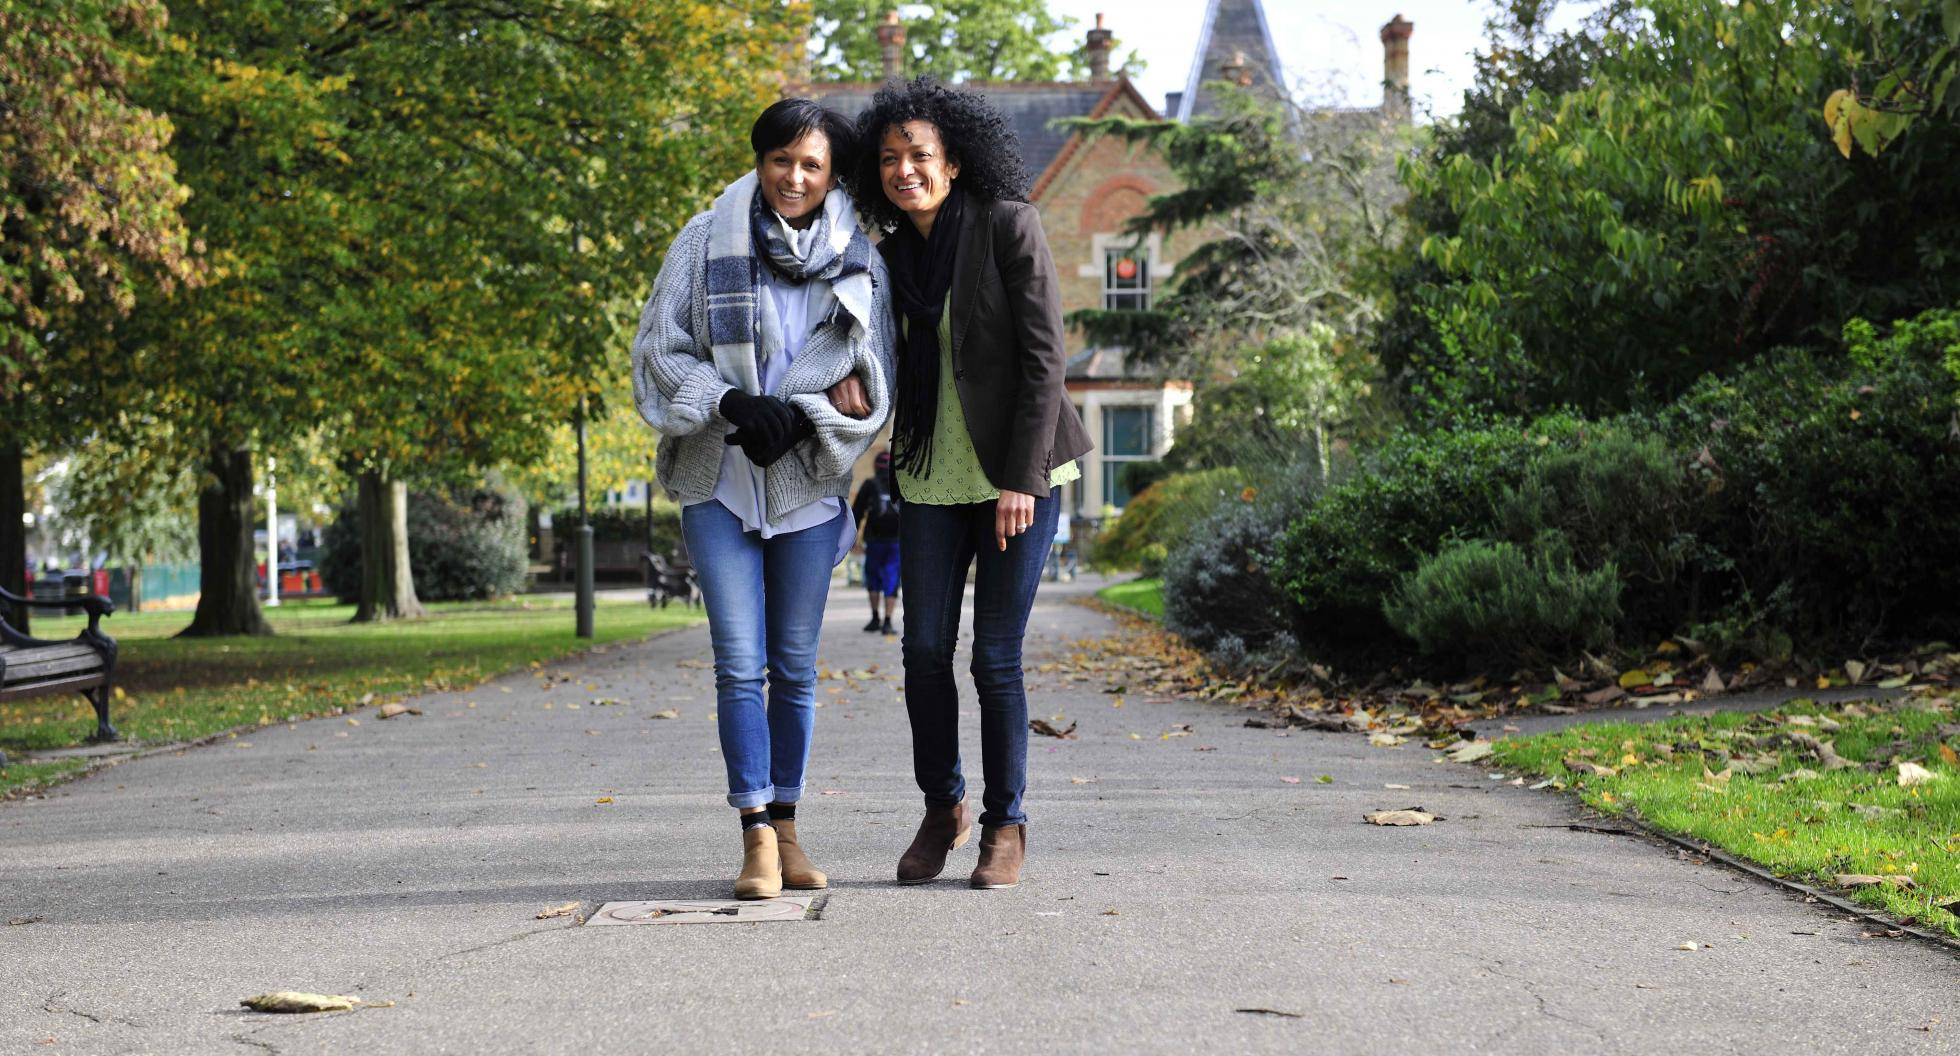 Two women walking through park